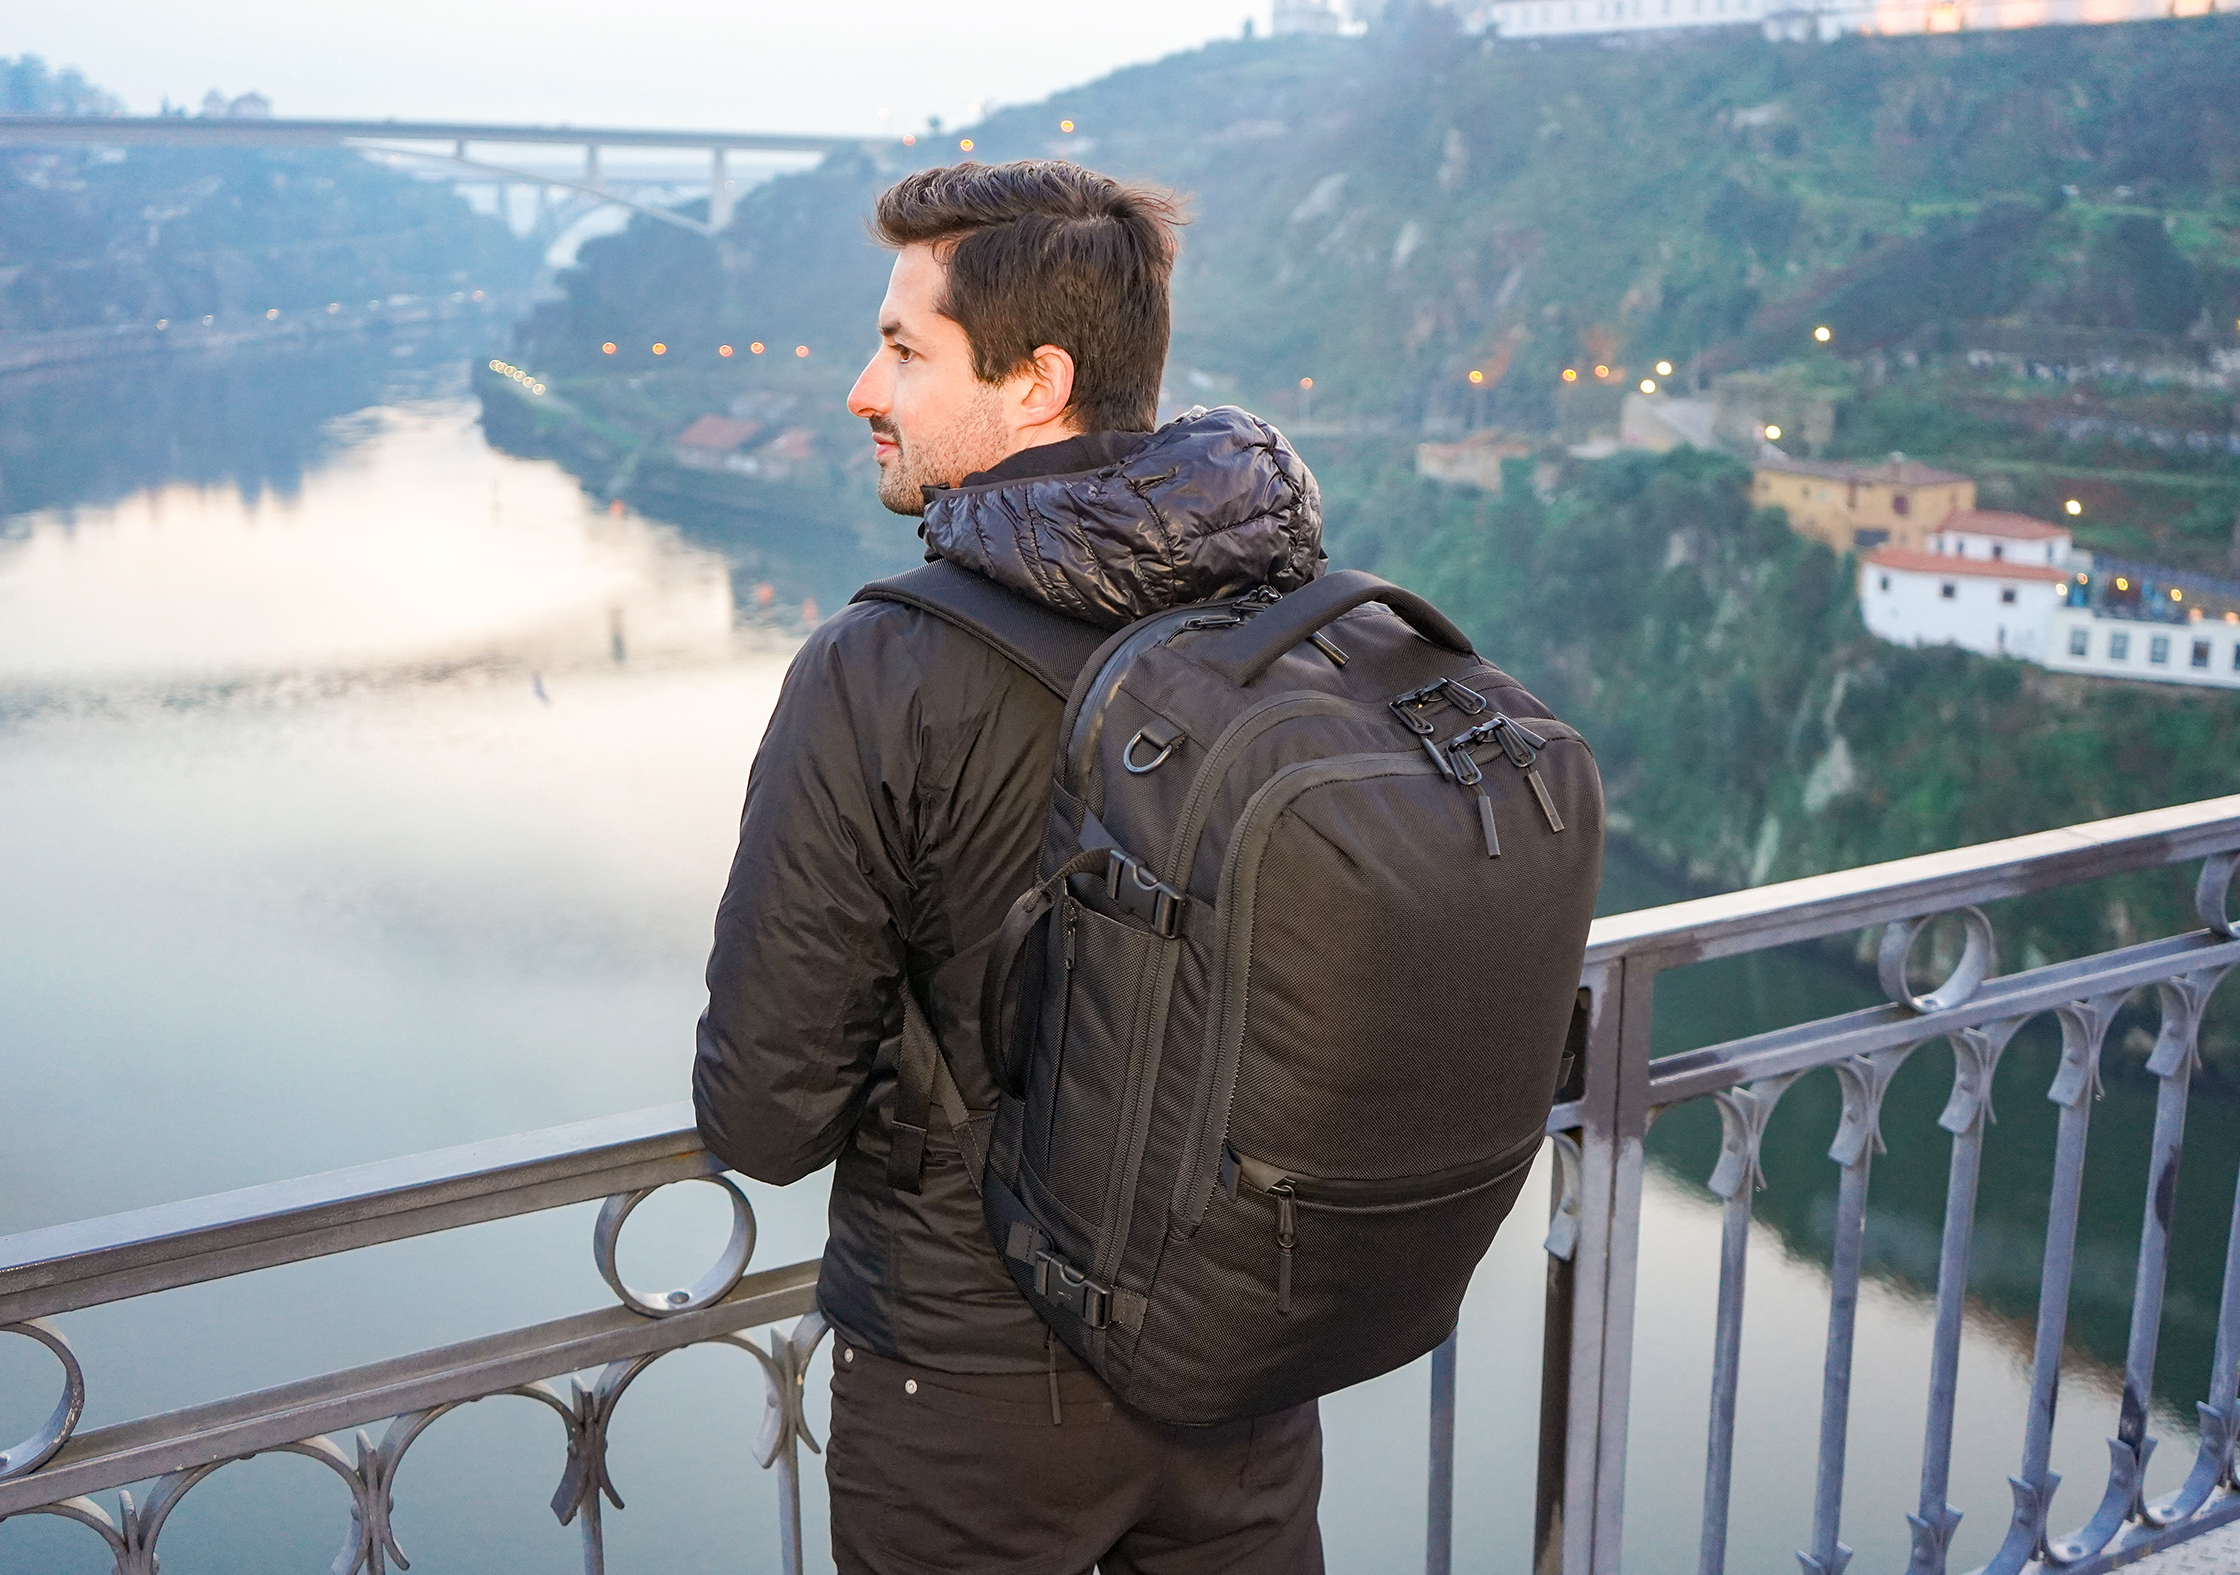 Tom Wahlin with the Aer Travel Pack 2 in Porto, Portugal